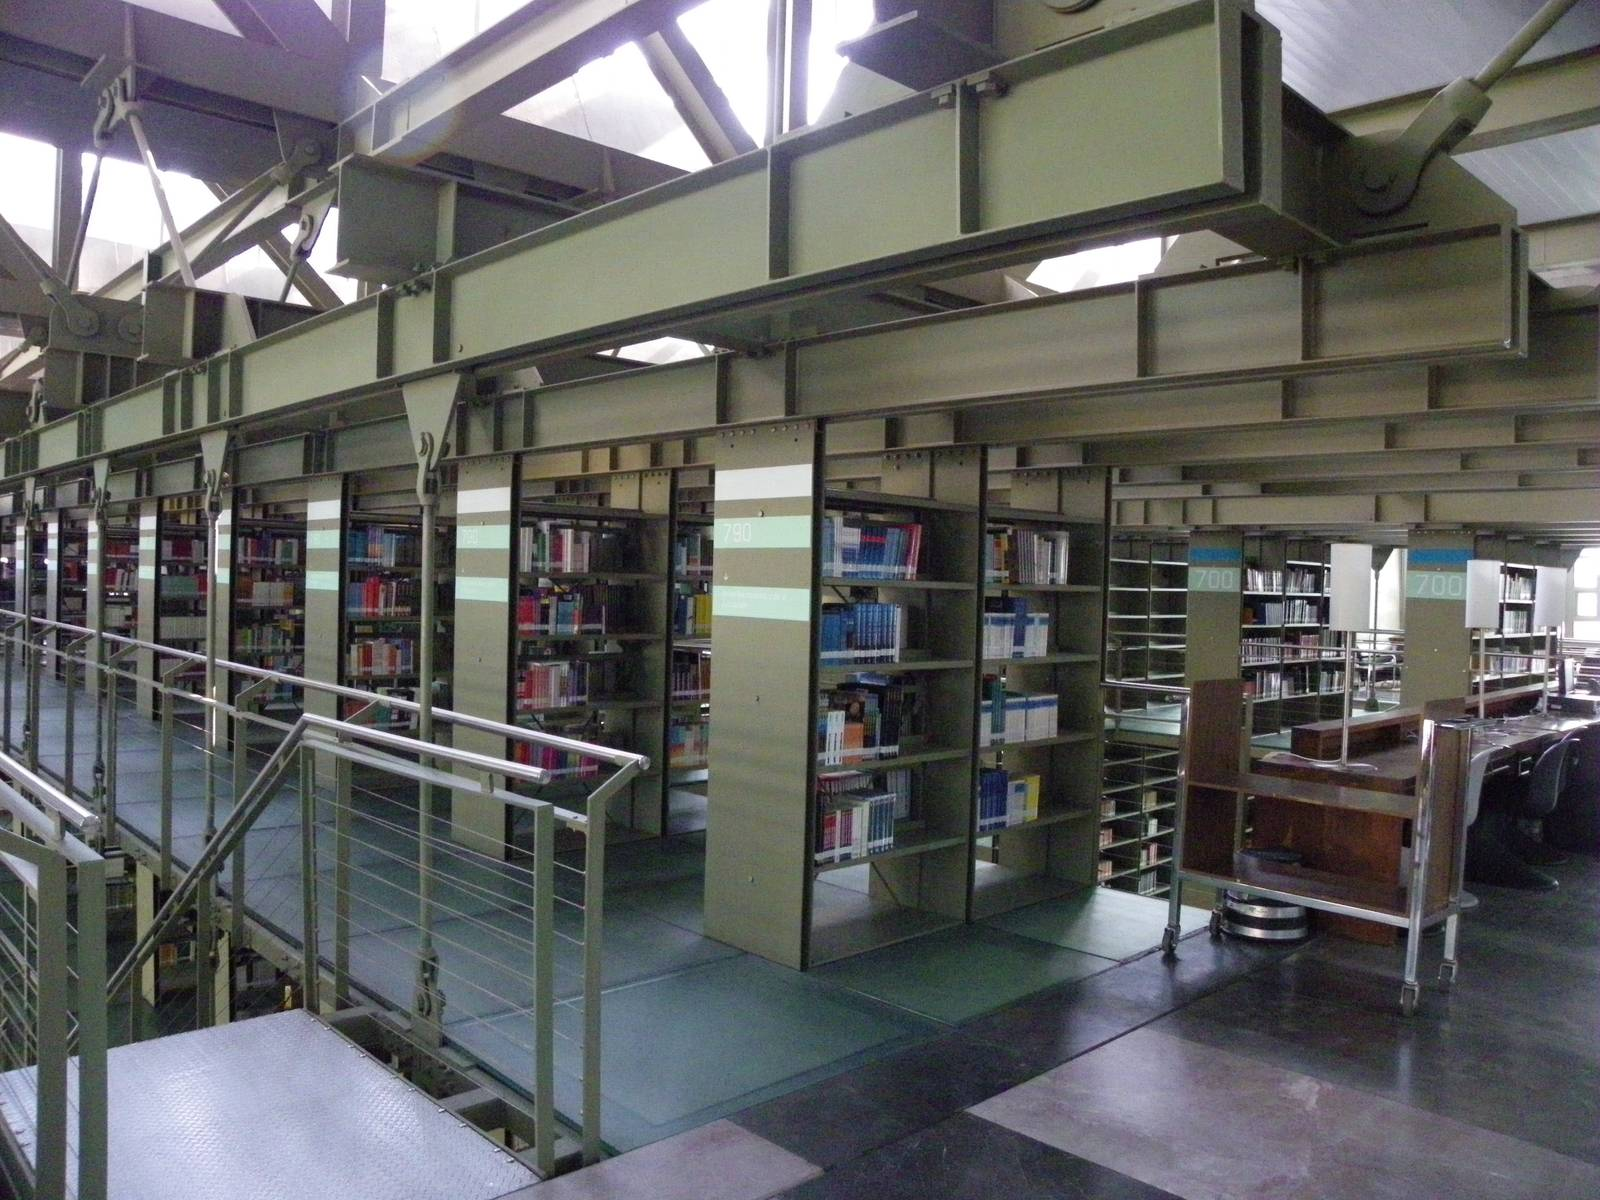 biblioteca vasconcelos4 Biblioteca Vasconcelos   Public Library in Mexico City